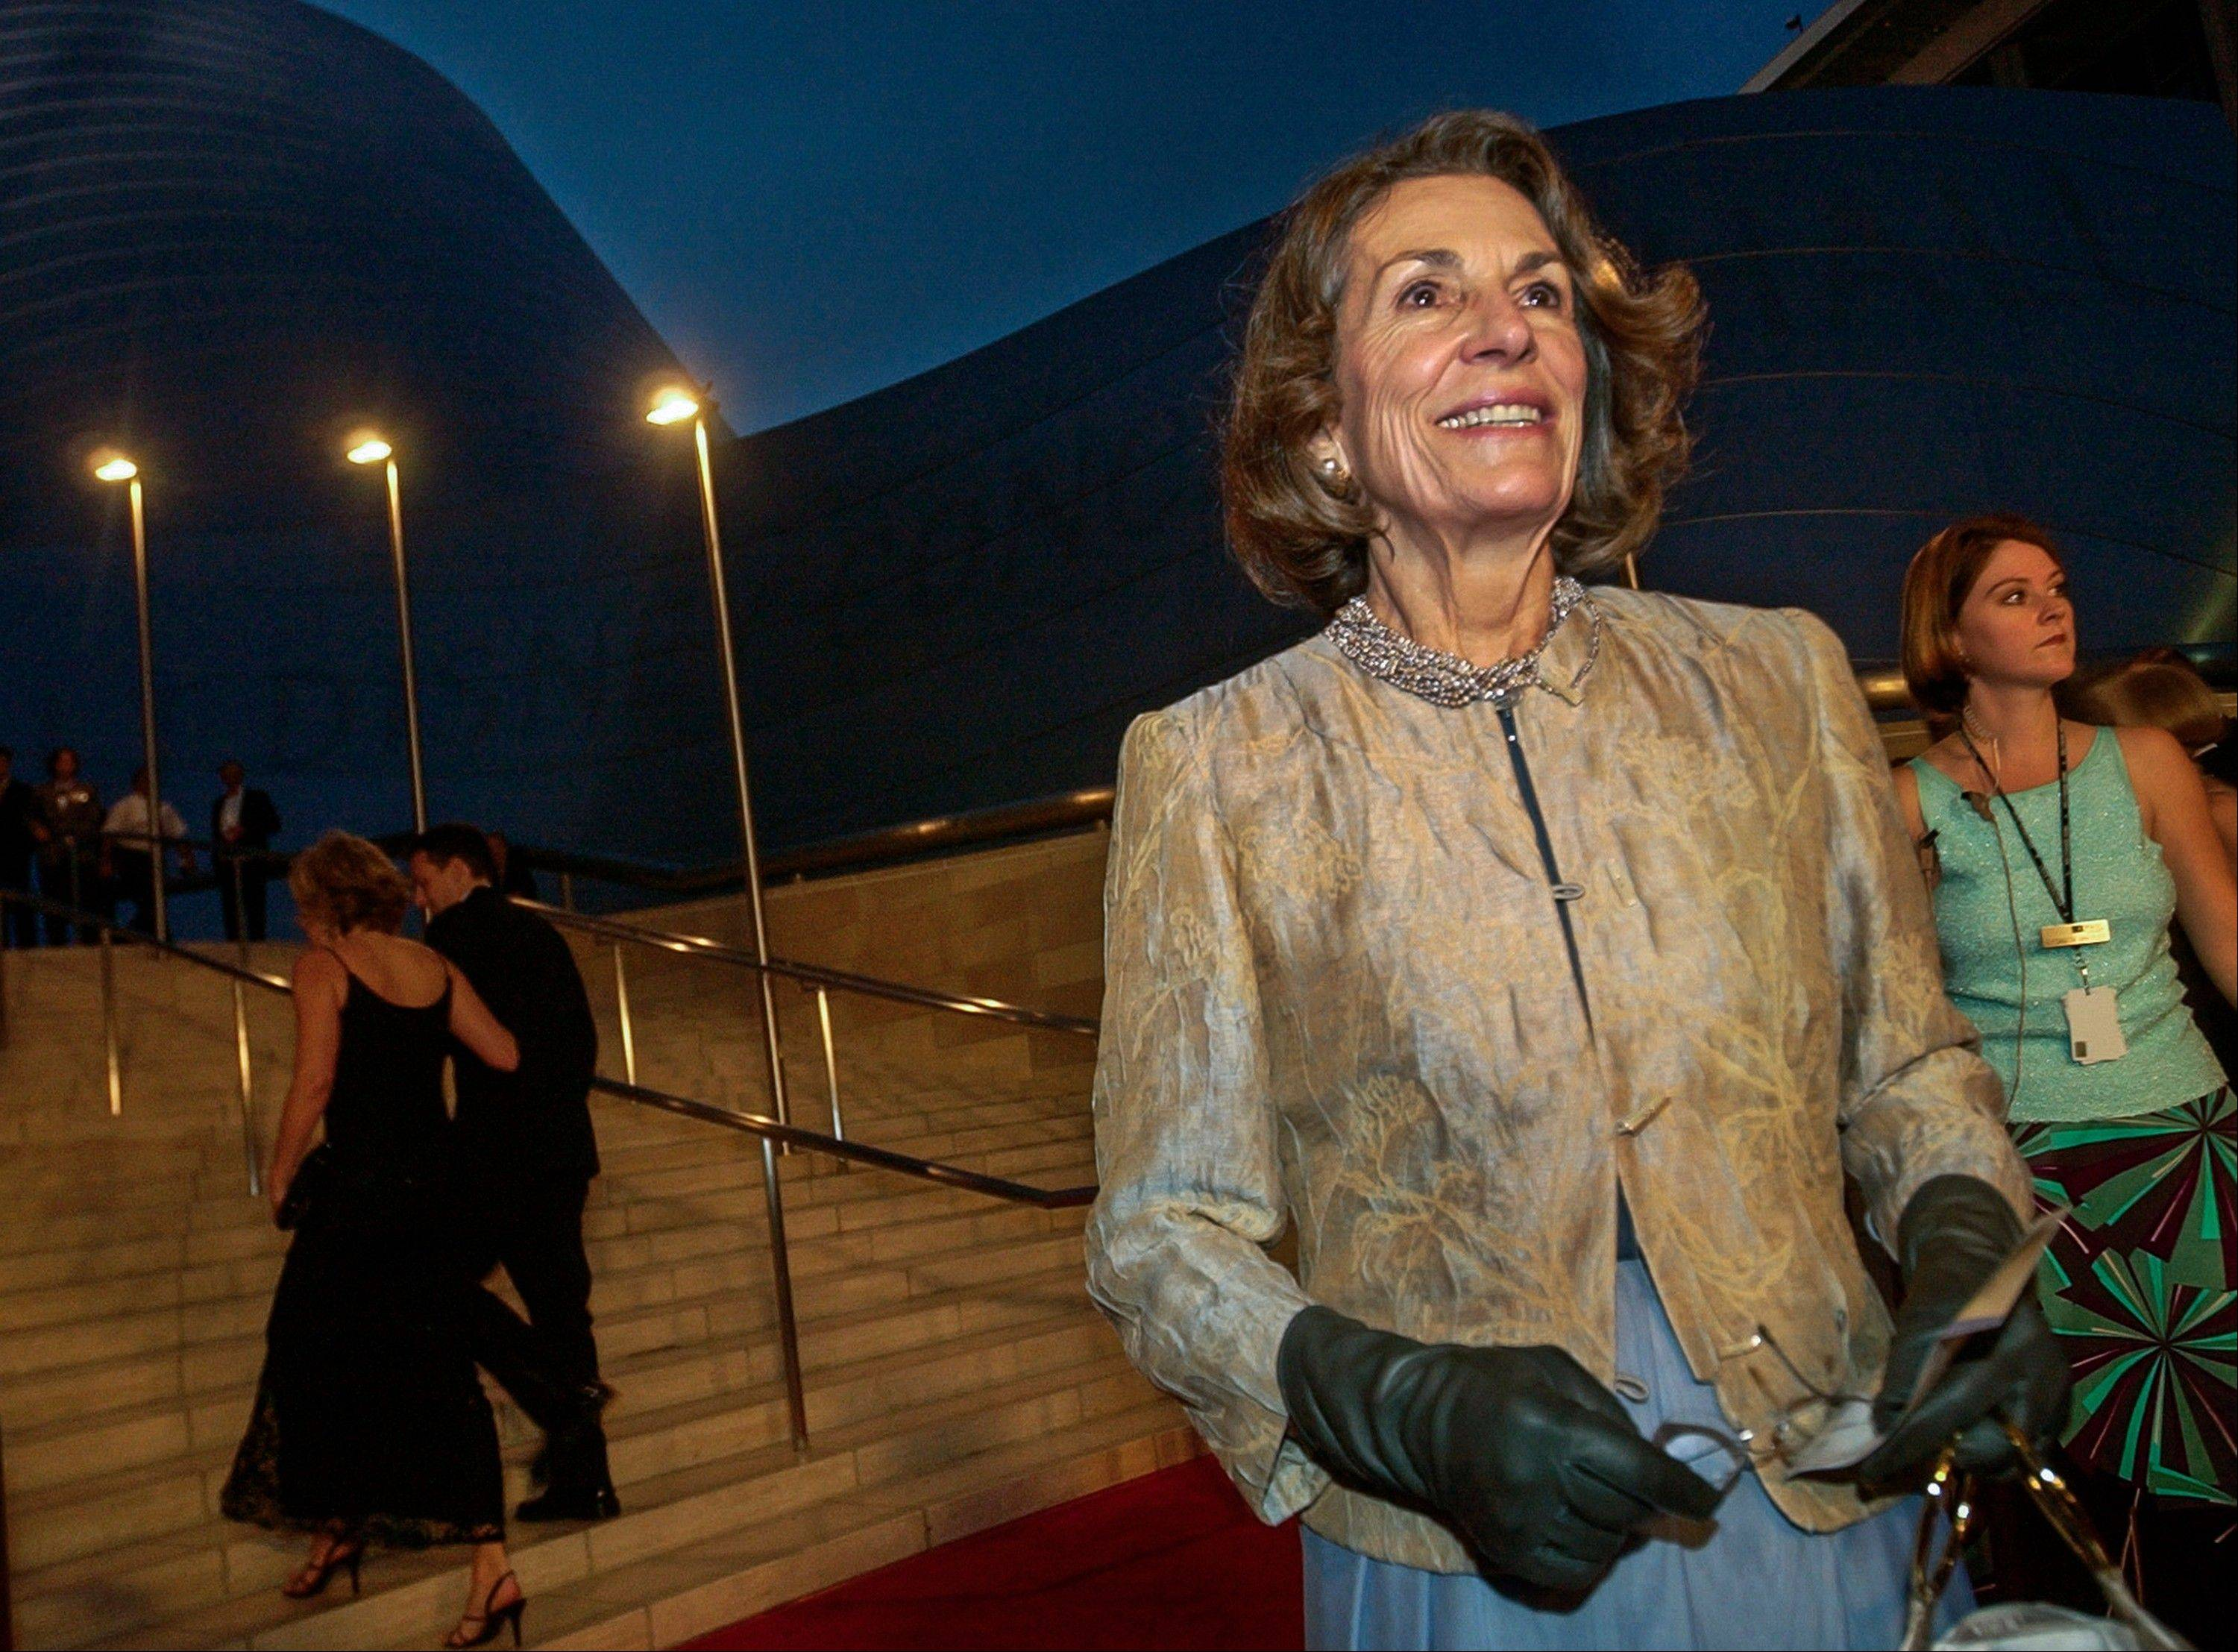 In this Oct. 23, 2003 file photo, Diane Disney Miller poses for photographers as she arrives for a grand opening concert gala at the new Walt Disney Concert Hall in Los Angeles. Disney Miller, the daughter of Walt Disney and one of his inspirations for building the Disneyland theme park, has died at her home in Napa, California. She was 79.